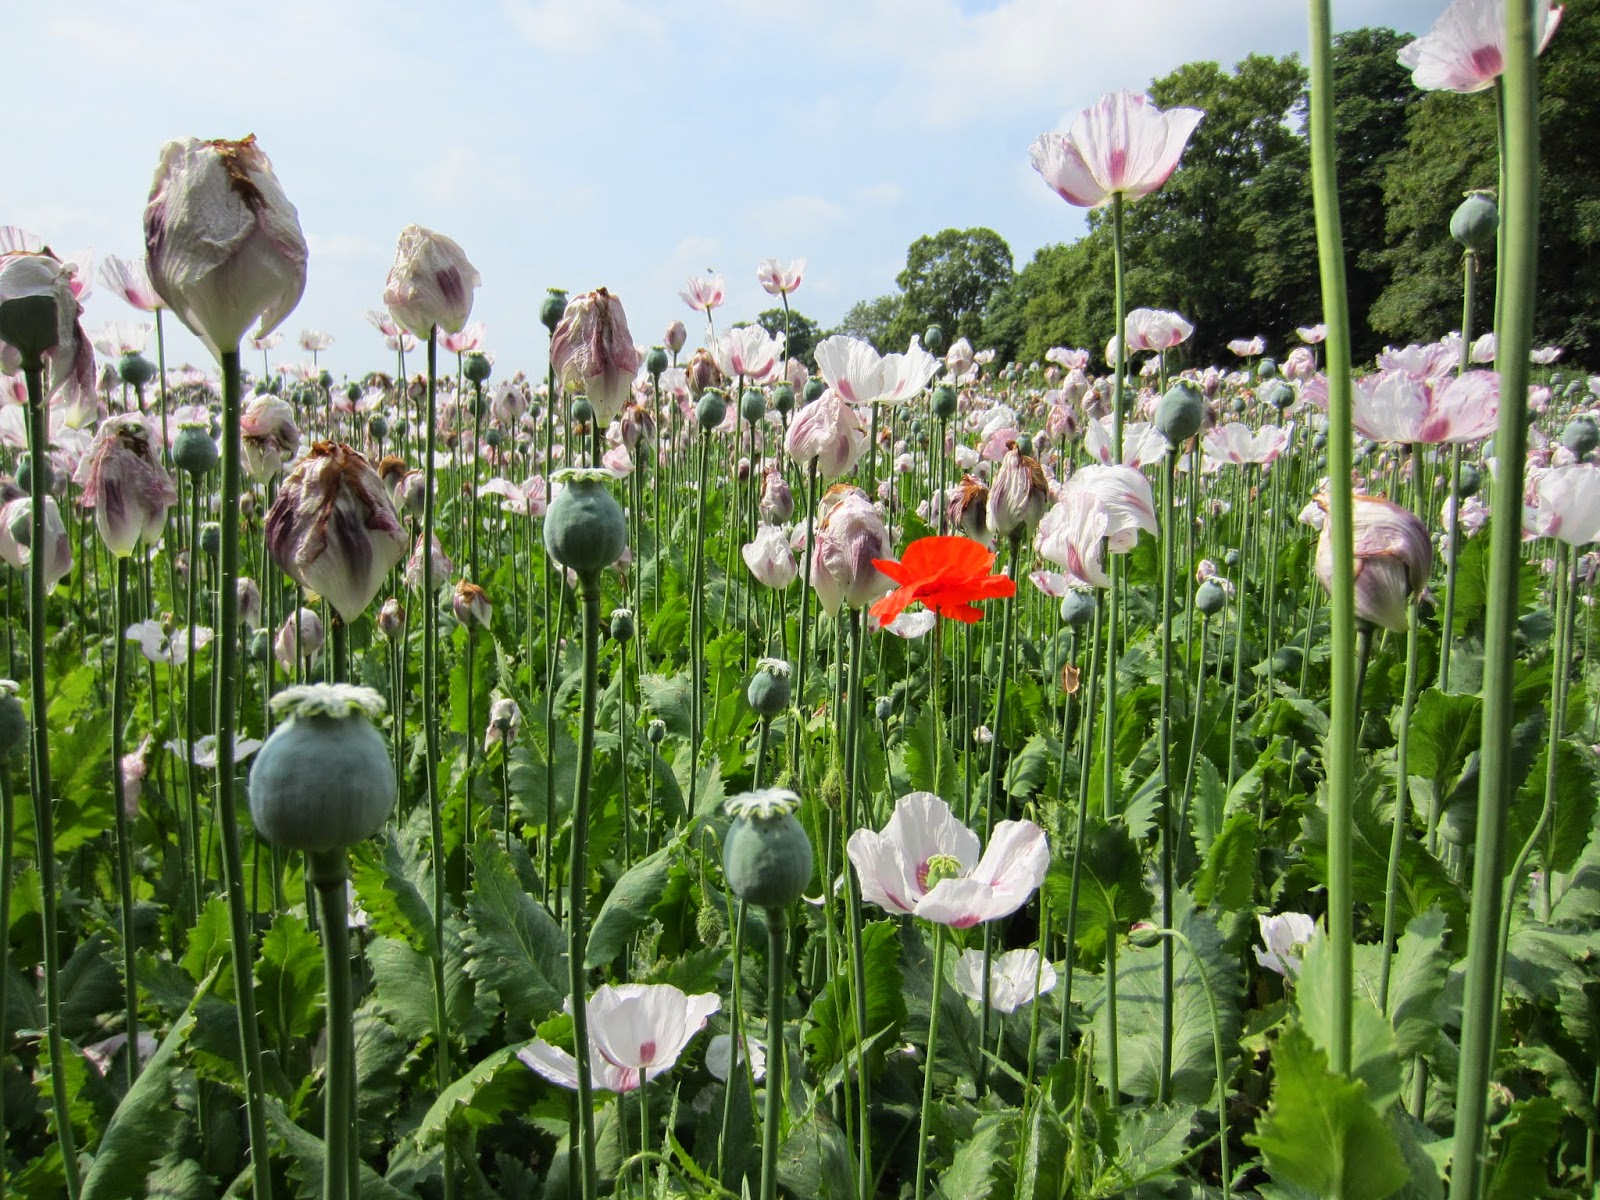 A red poppy amongst white poppies